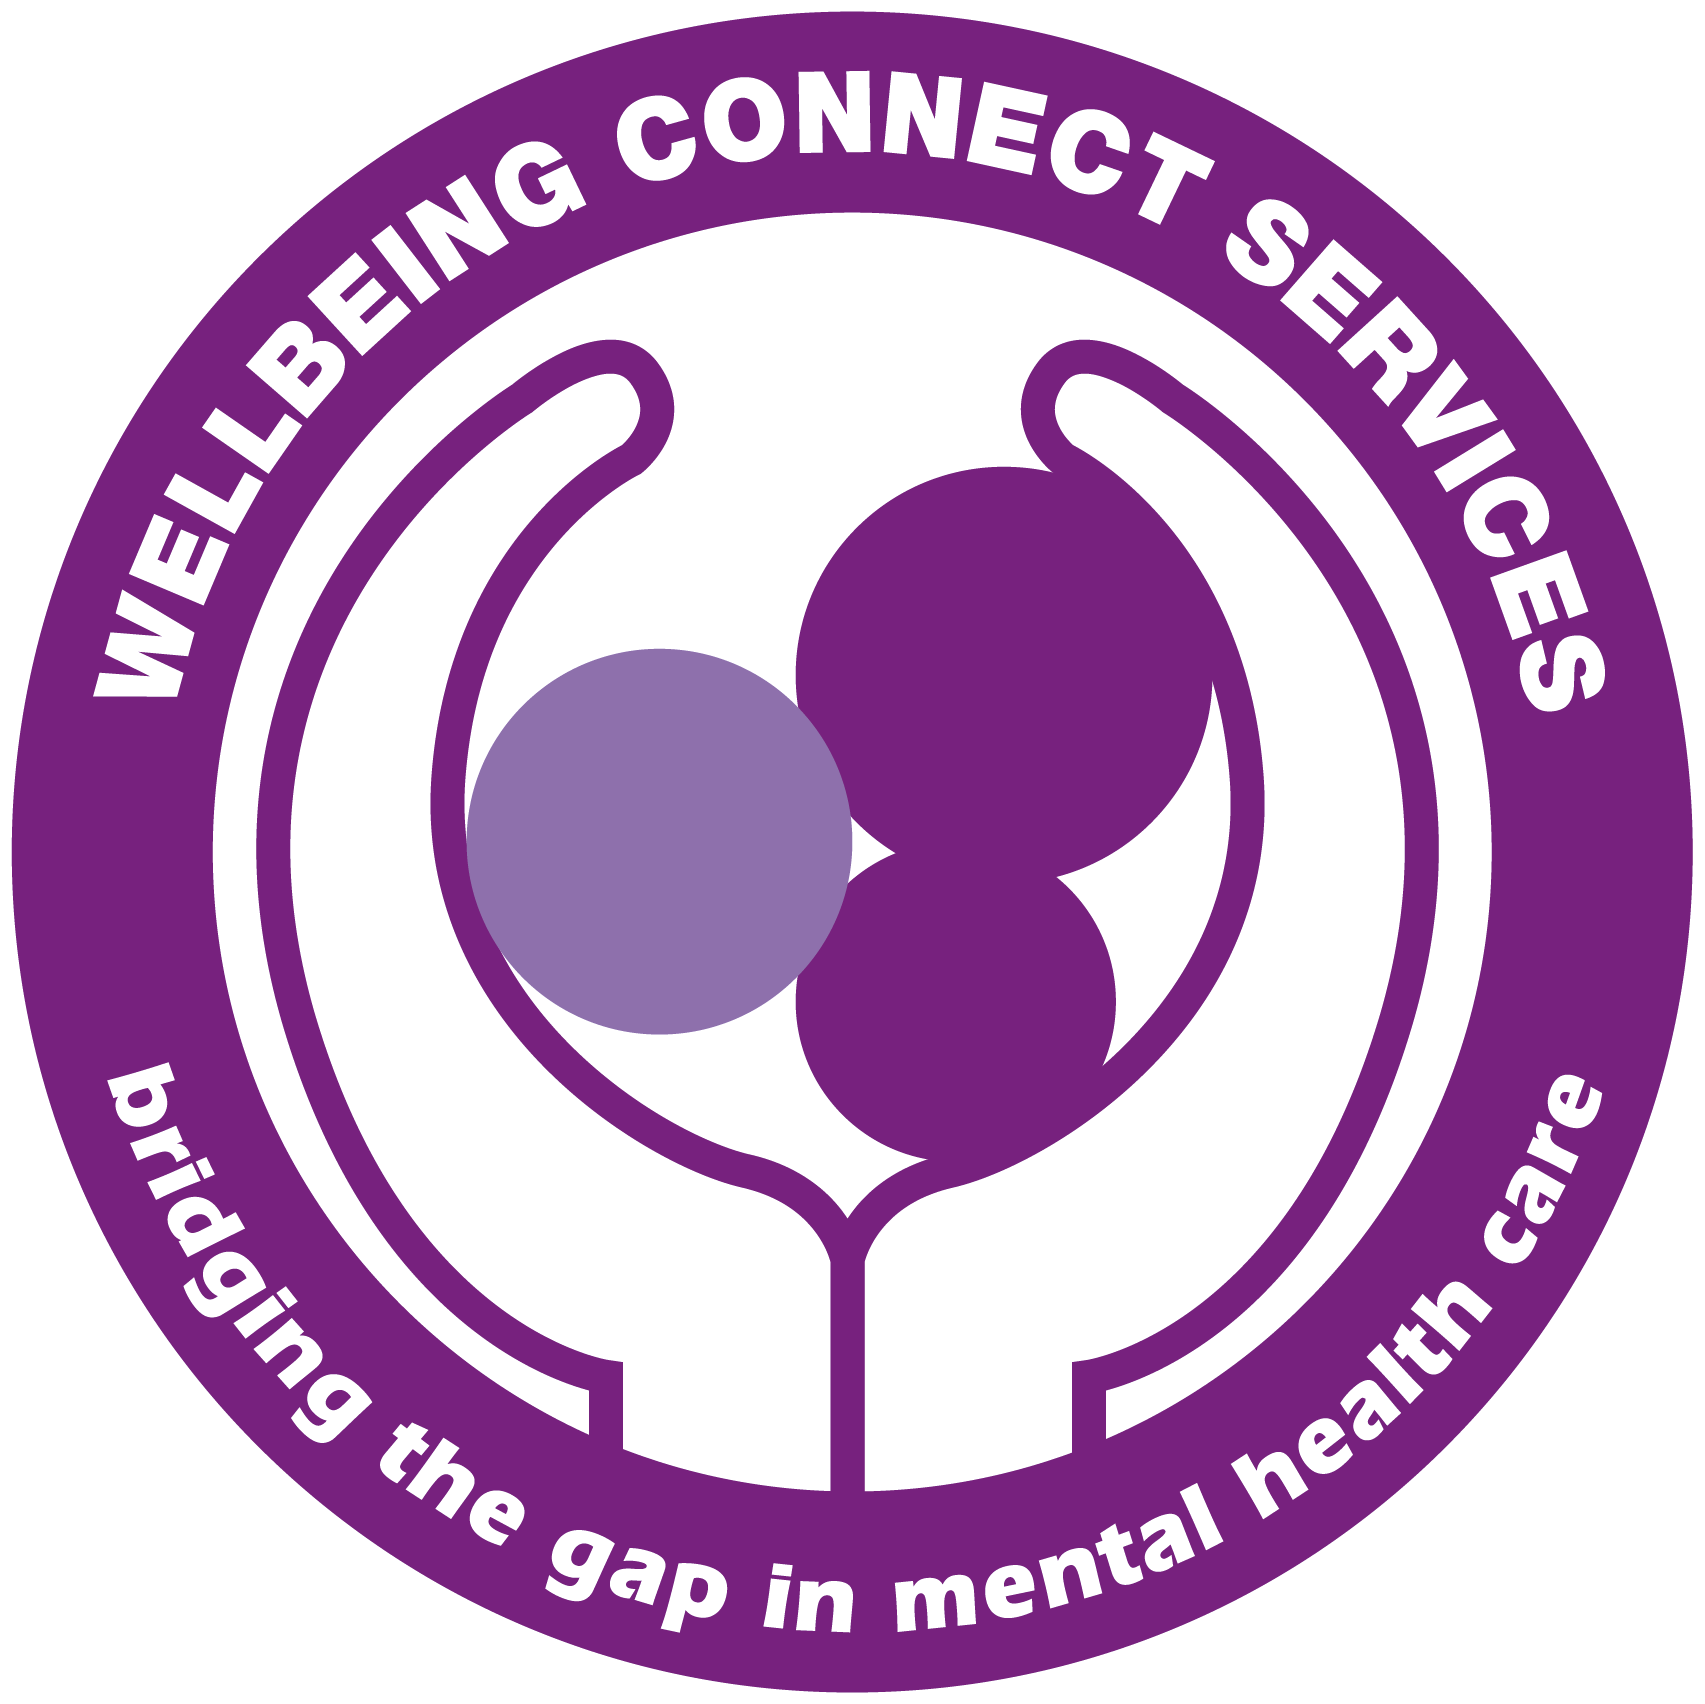 Wellbeing Connect Services